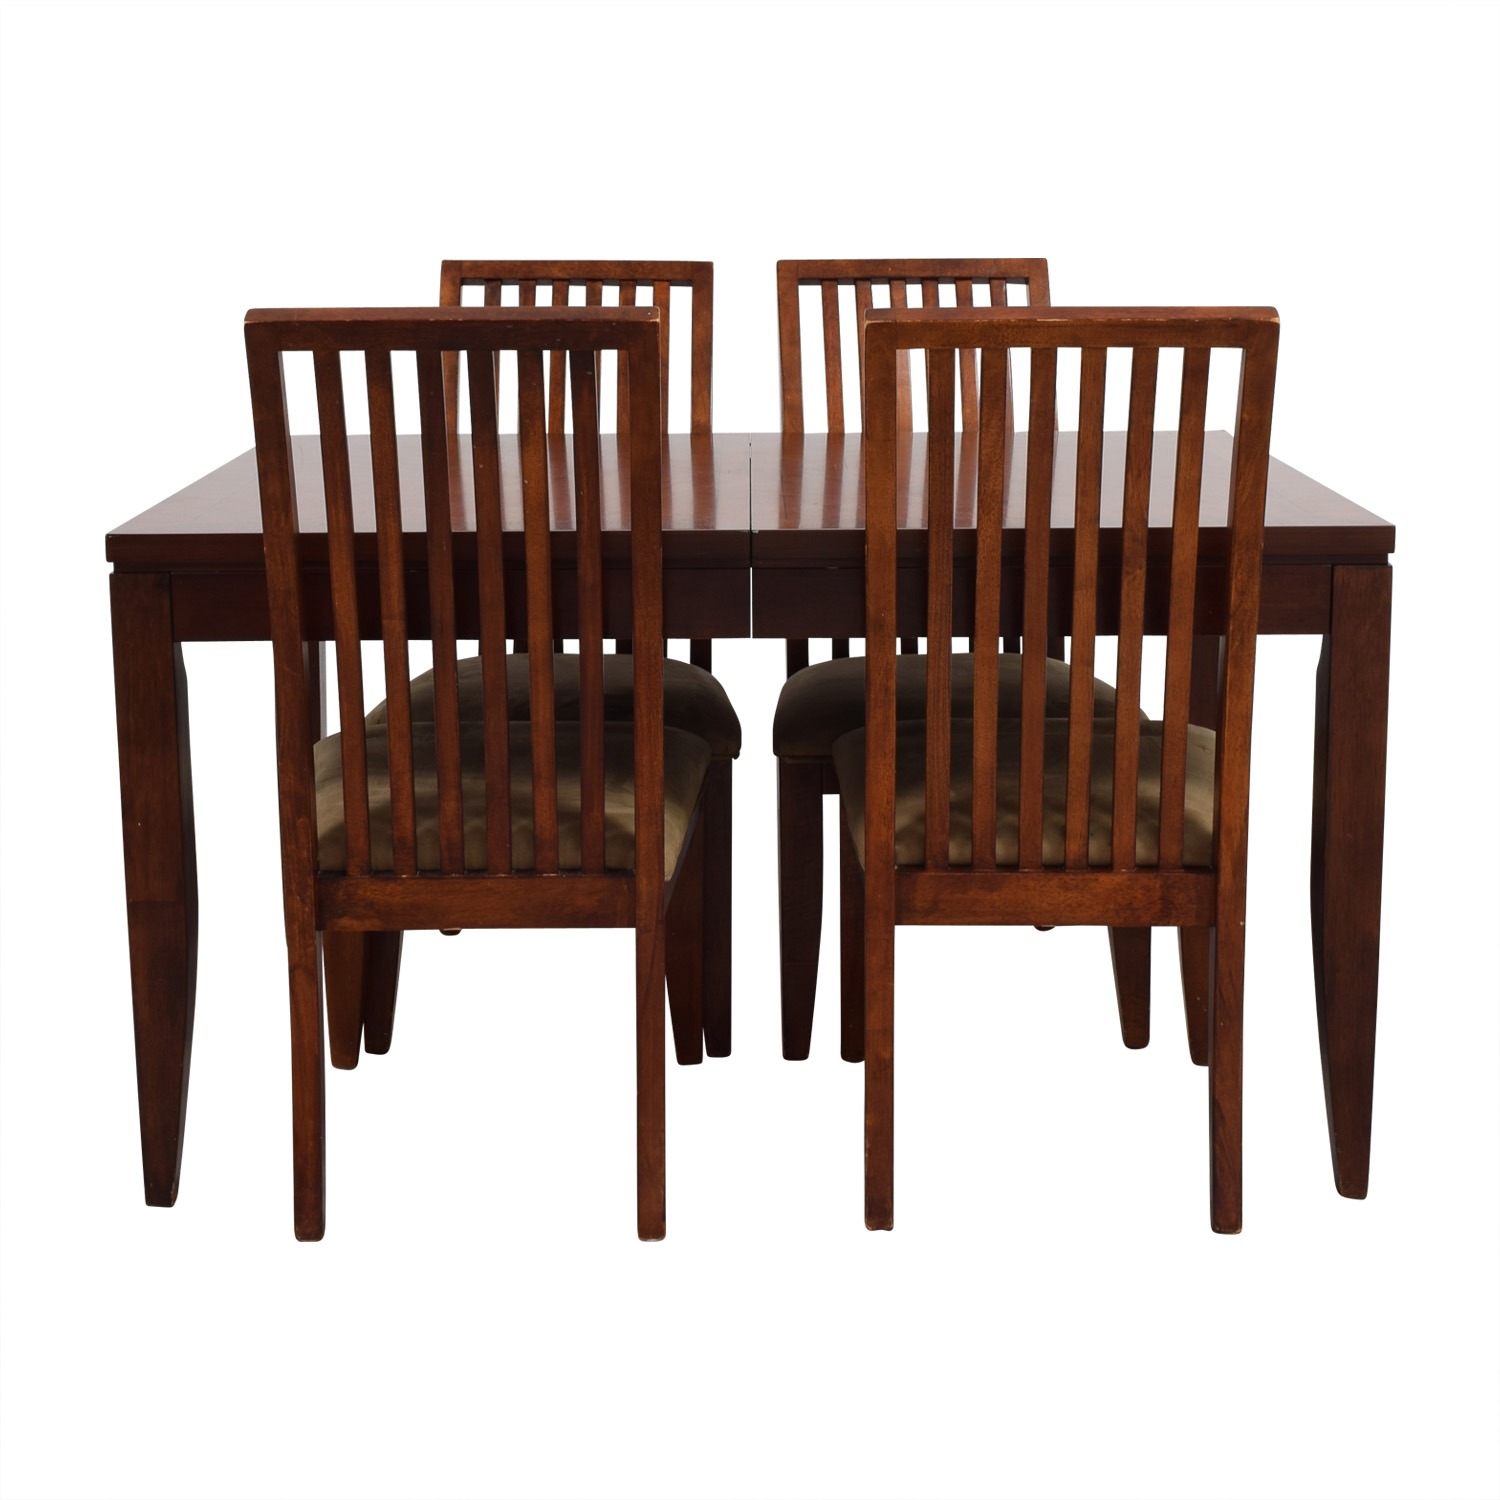 buy Macys Wood Dining Set with Extendable Leaf and Chairs Macys